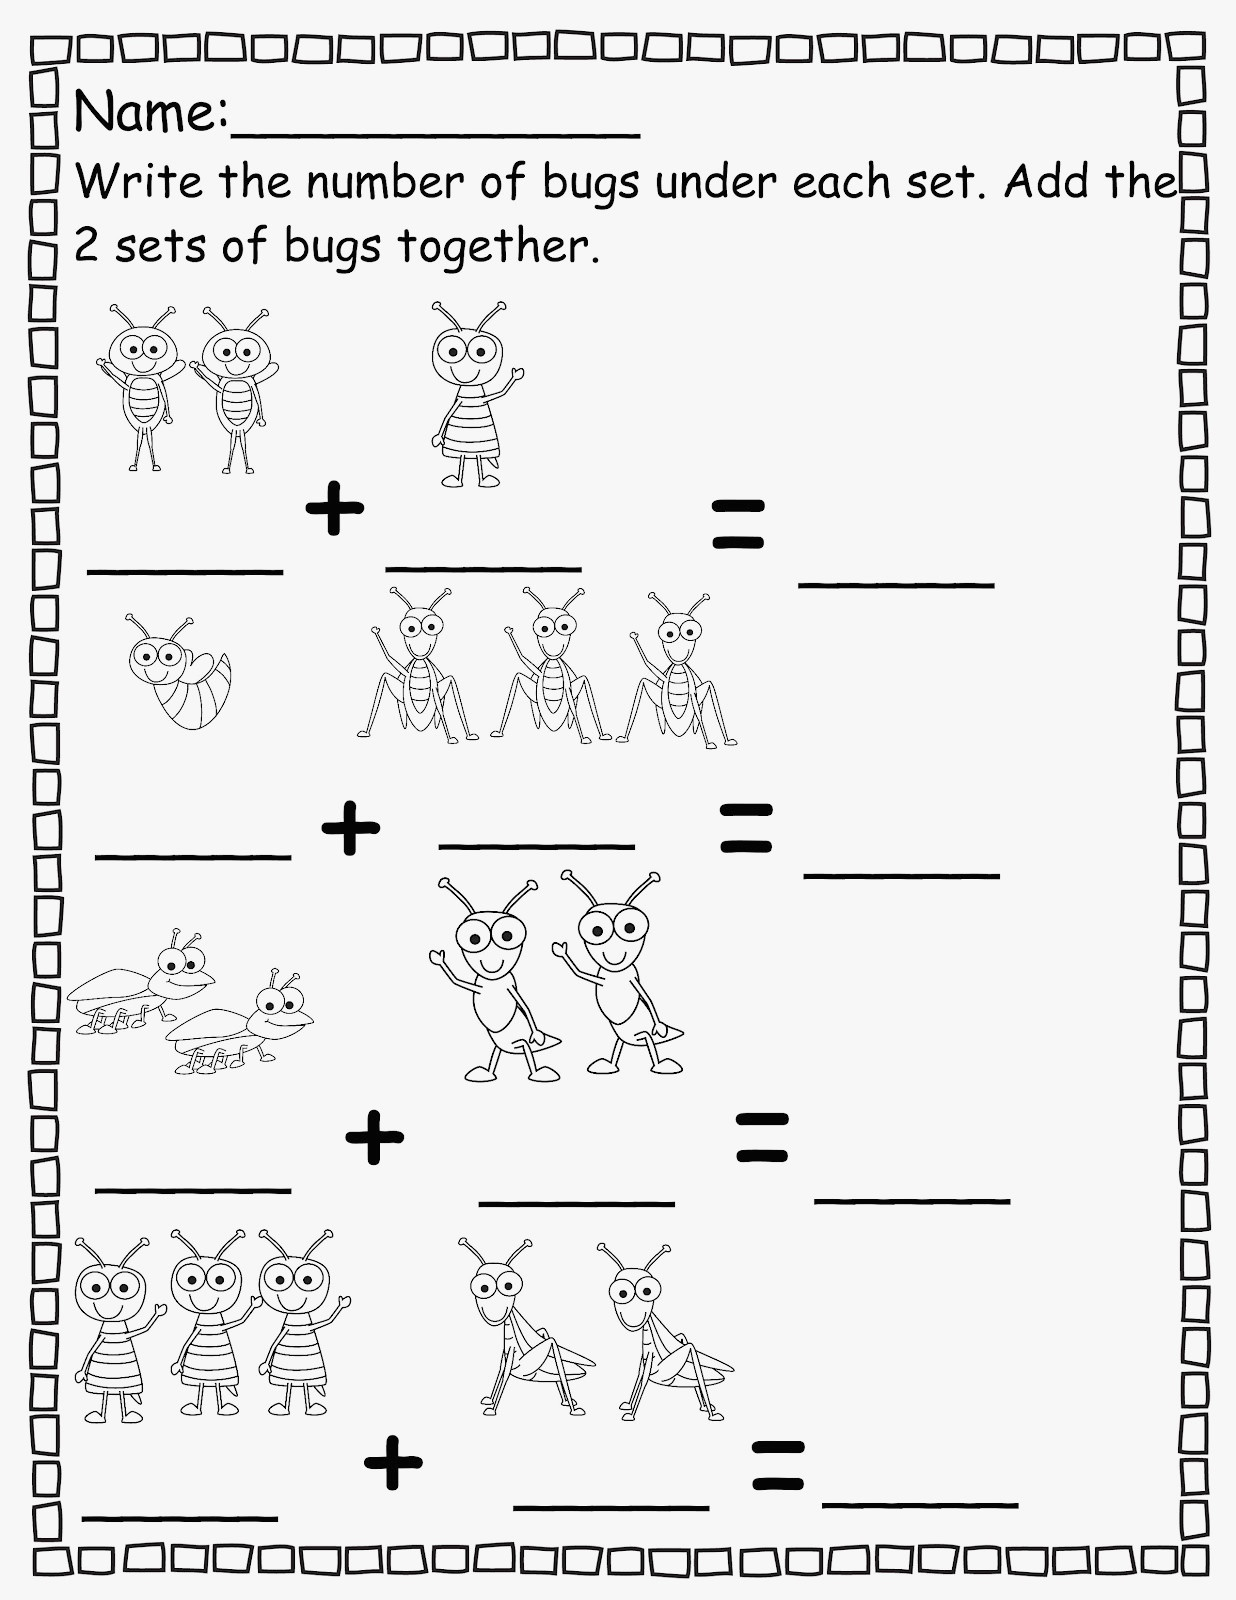 68 Lovely Of Quality Prek Worksheets Free Image